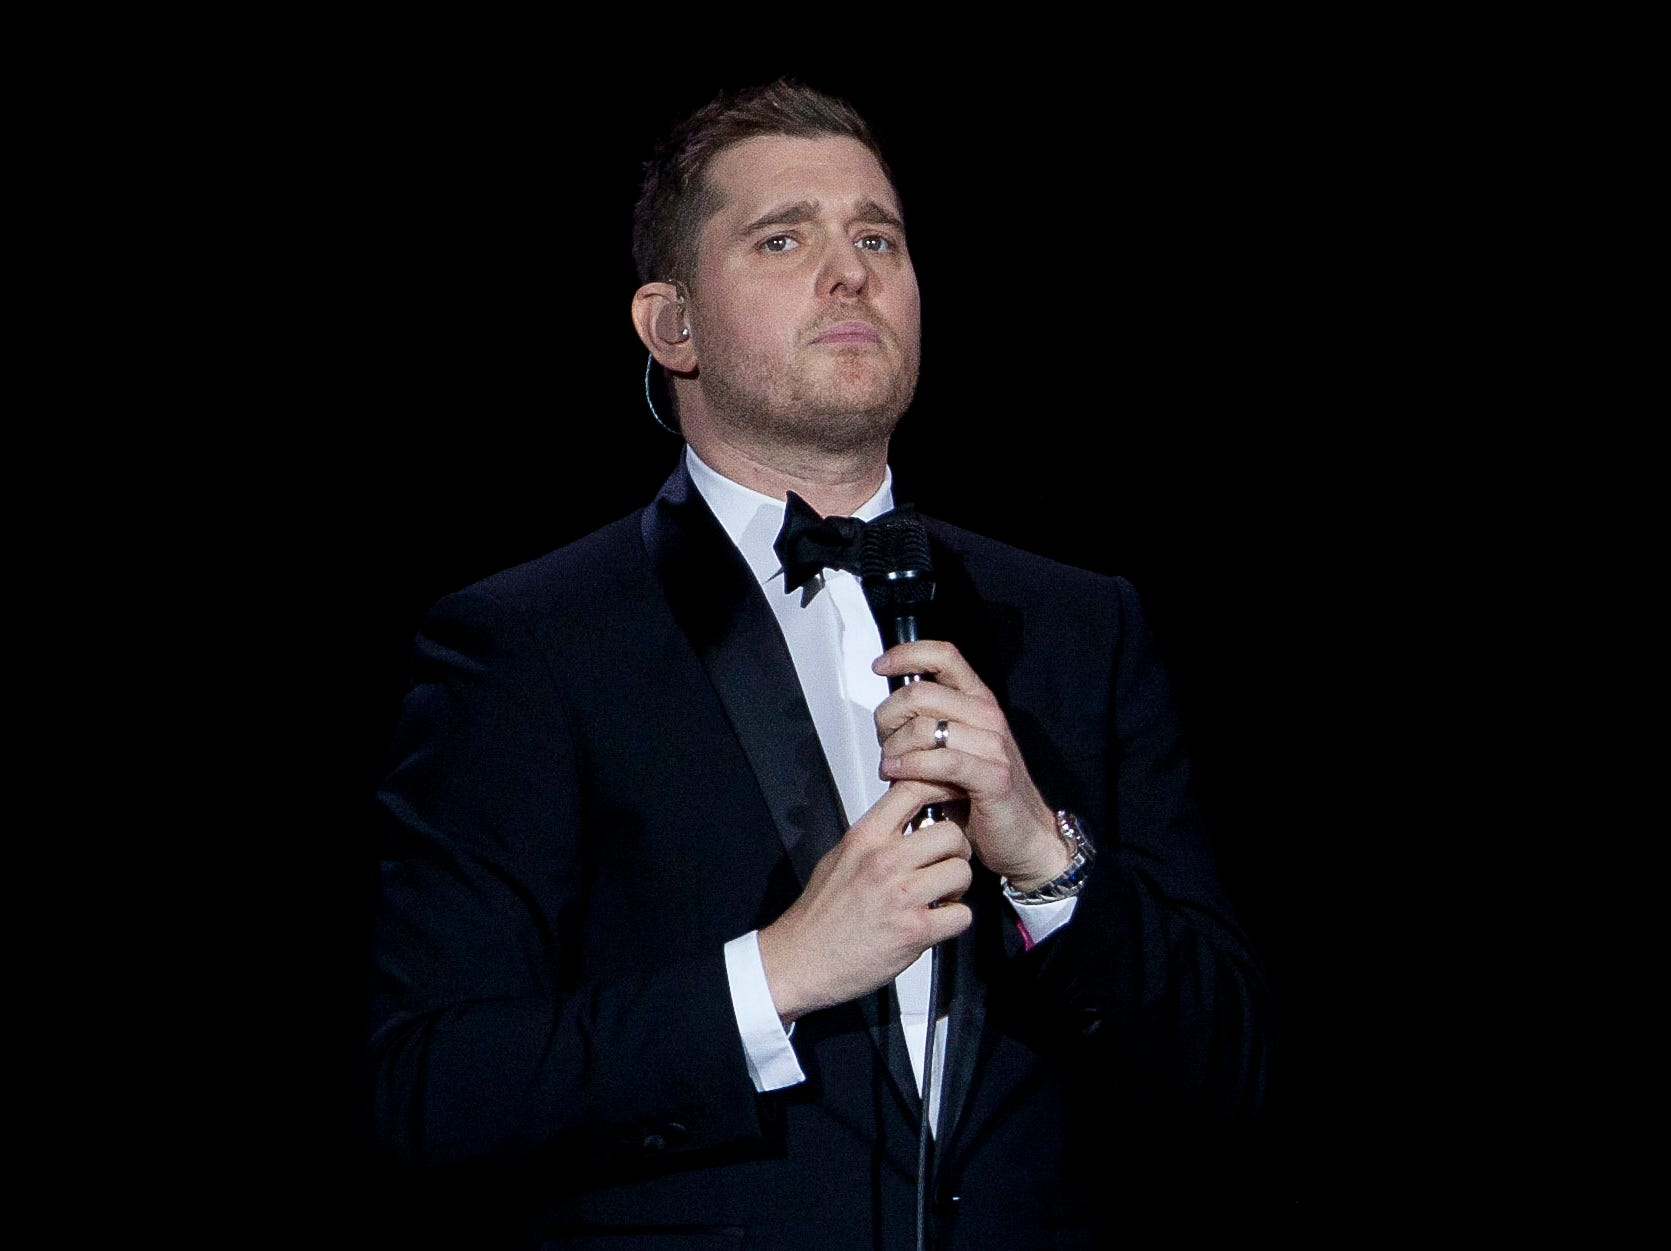 Confused flight attendants asked Michael Buble if he won 'American Idol' or 'The Voice'